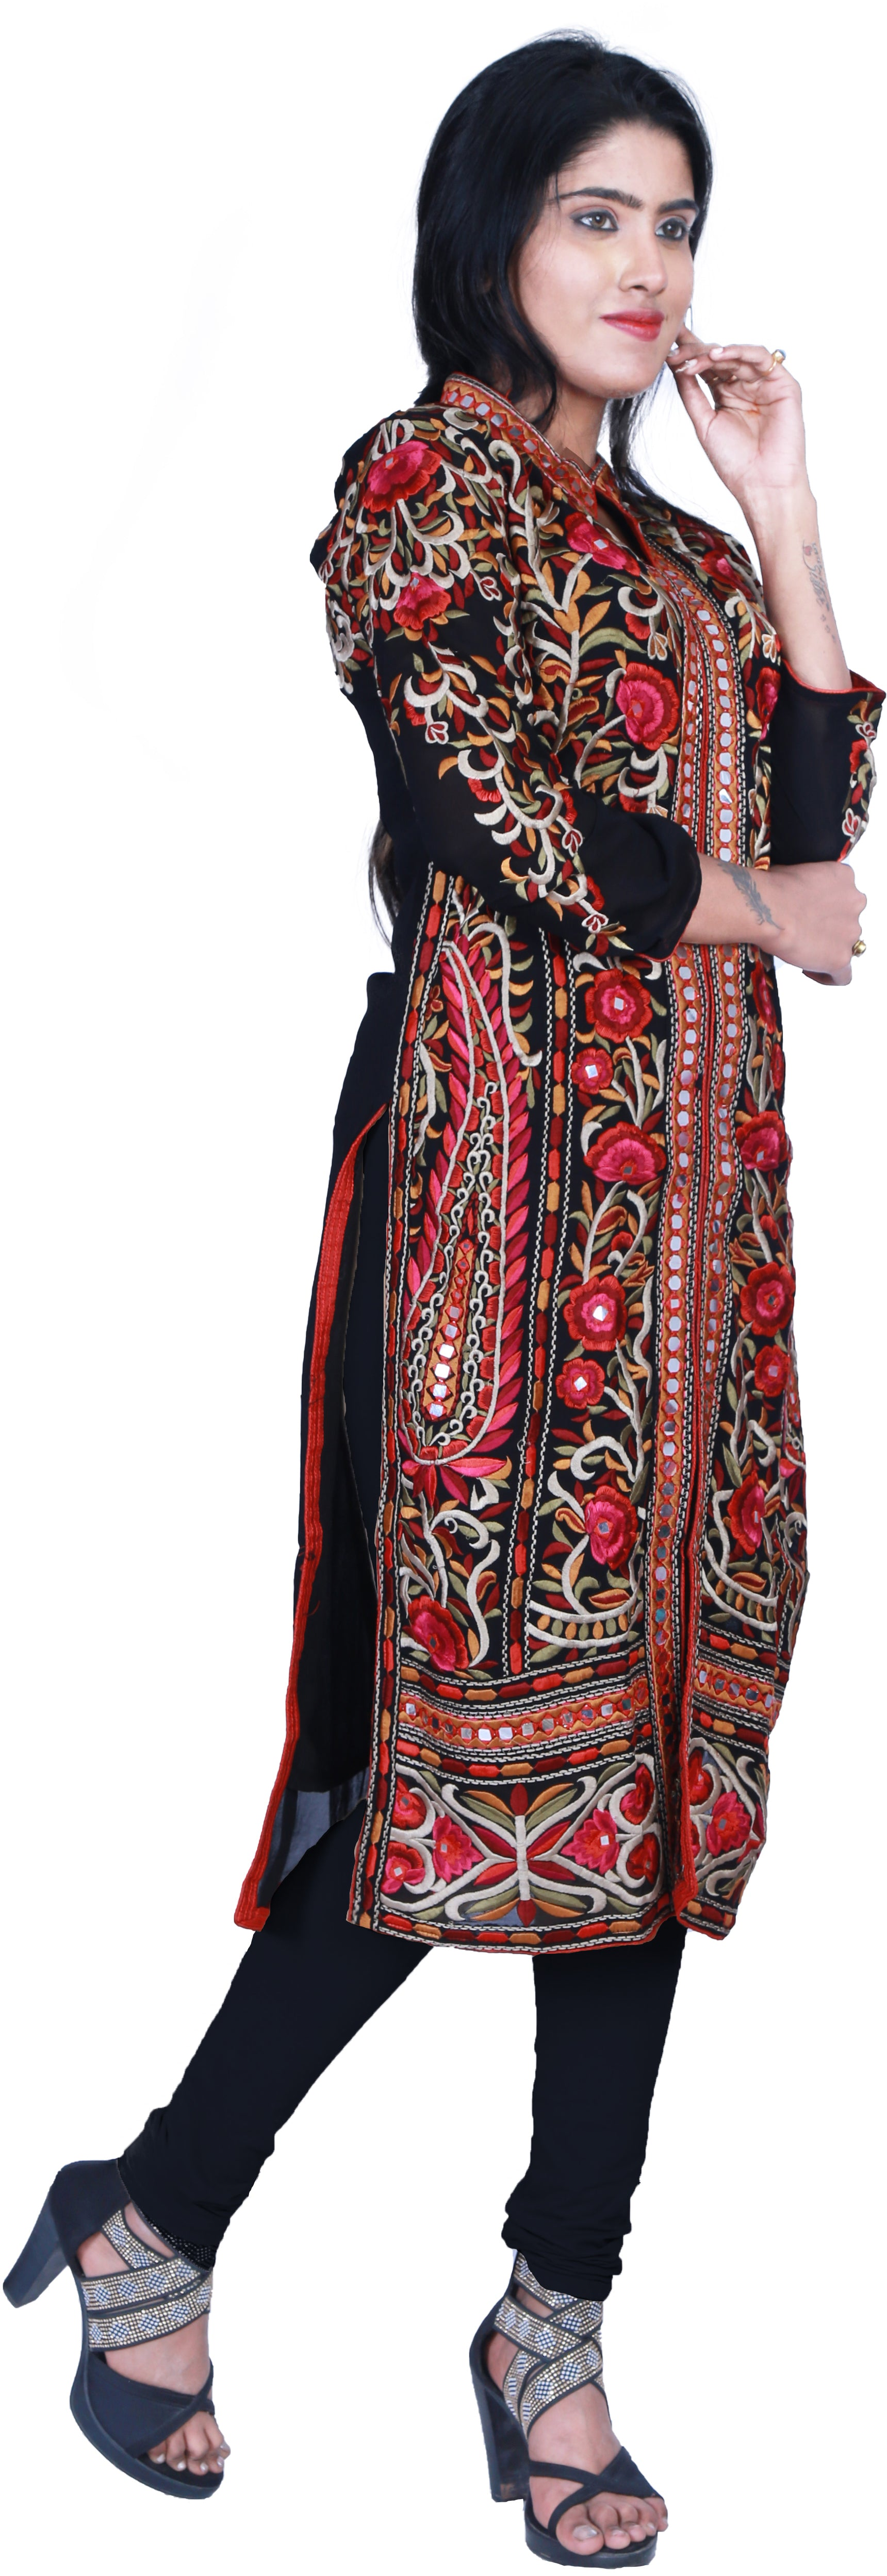 SMSAREE Black Designer Casual Partywear Geogette Viscos Thread & Mirror Hand Embroidery Work Stylish Women Kurti Kurta With Free Matching Leggings D366